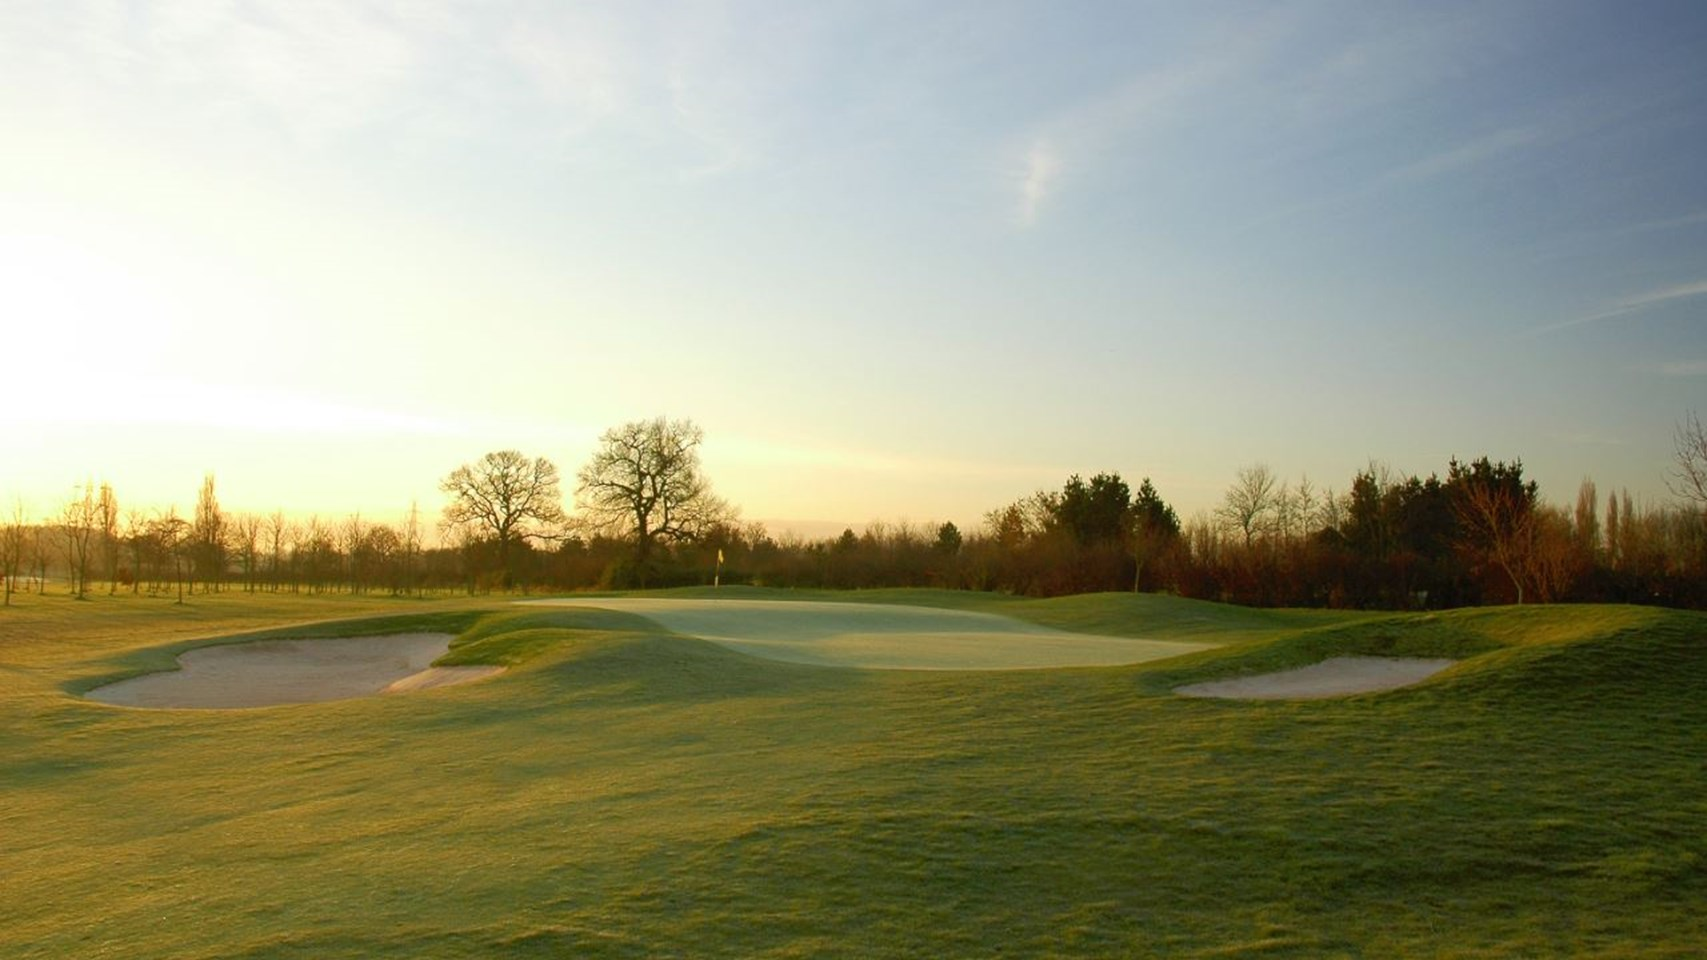 Landscape shot of the bunkers on The Belfry Golf Course with trees in the background on a wintry morning as the sun is rising.